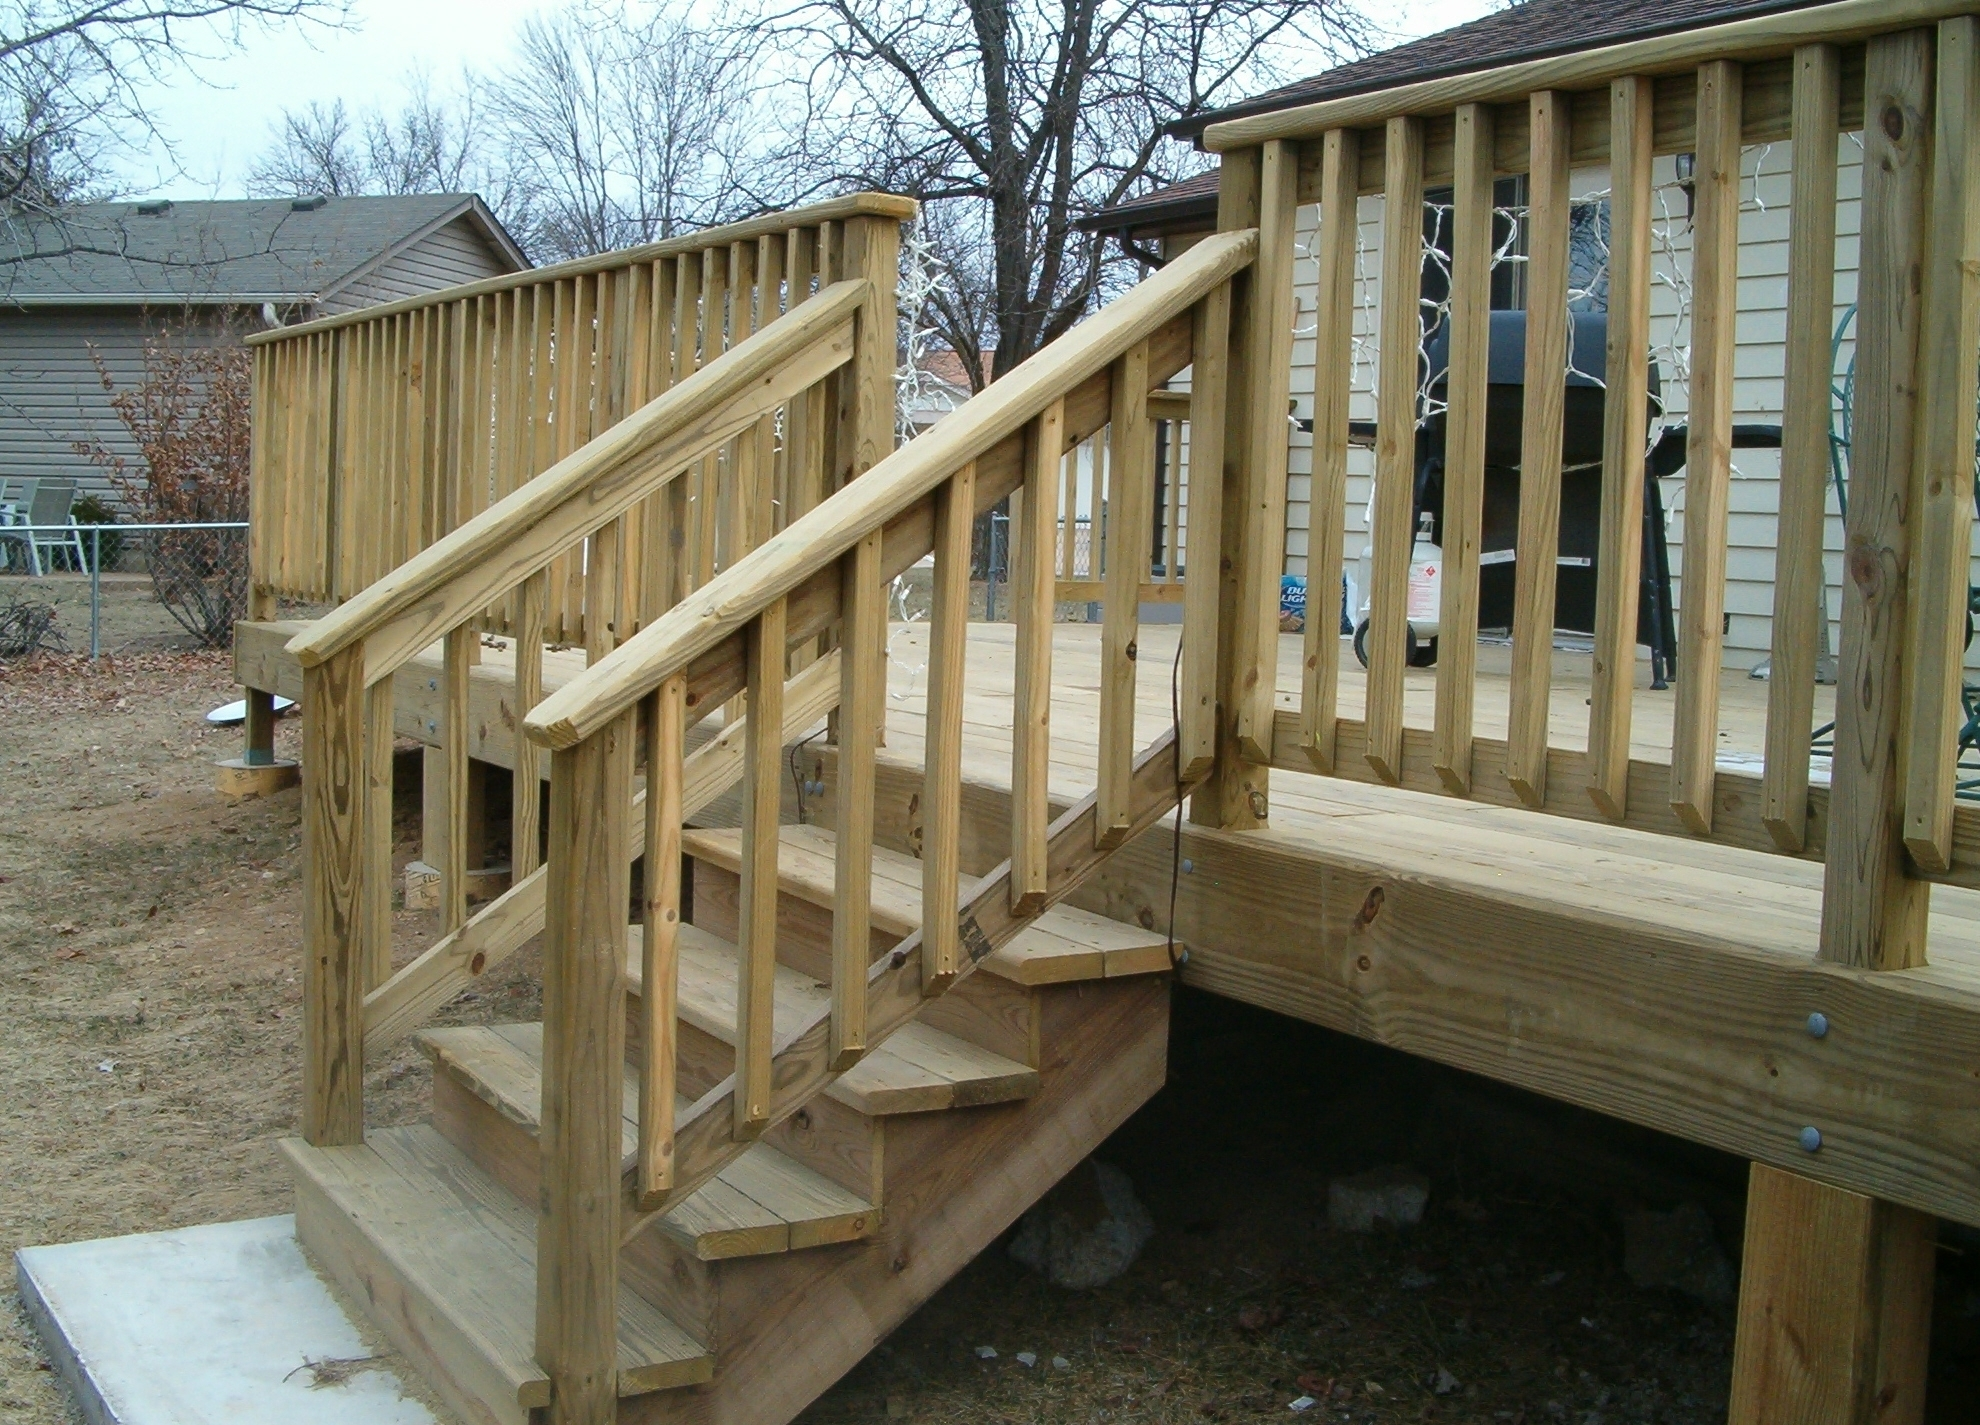 Wooden Handrails For Porch Steps — Randolph Indoor And Outdoor Design | Handrails For Front Steps | Stair | Brick | Steel | Simple | Contemporary